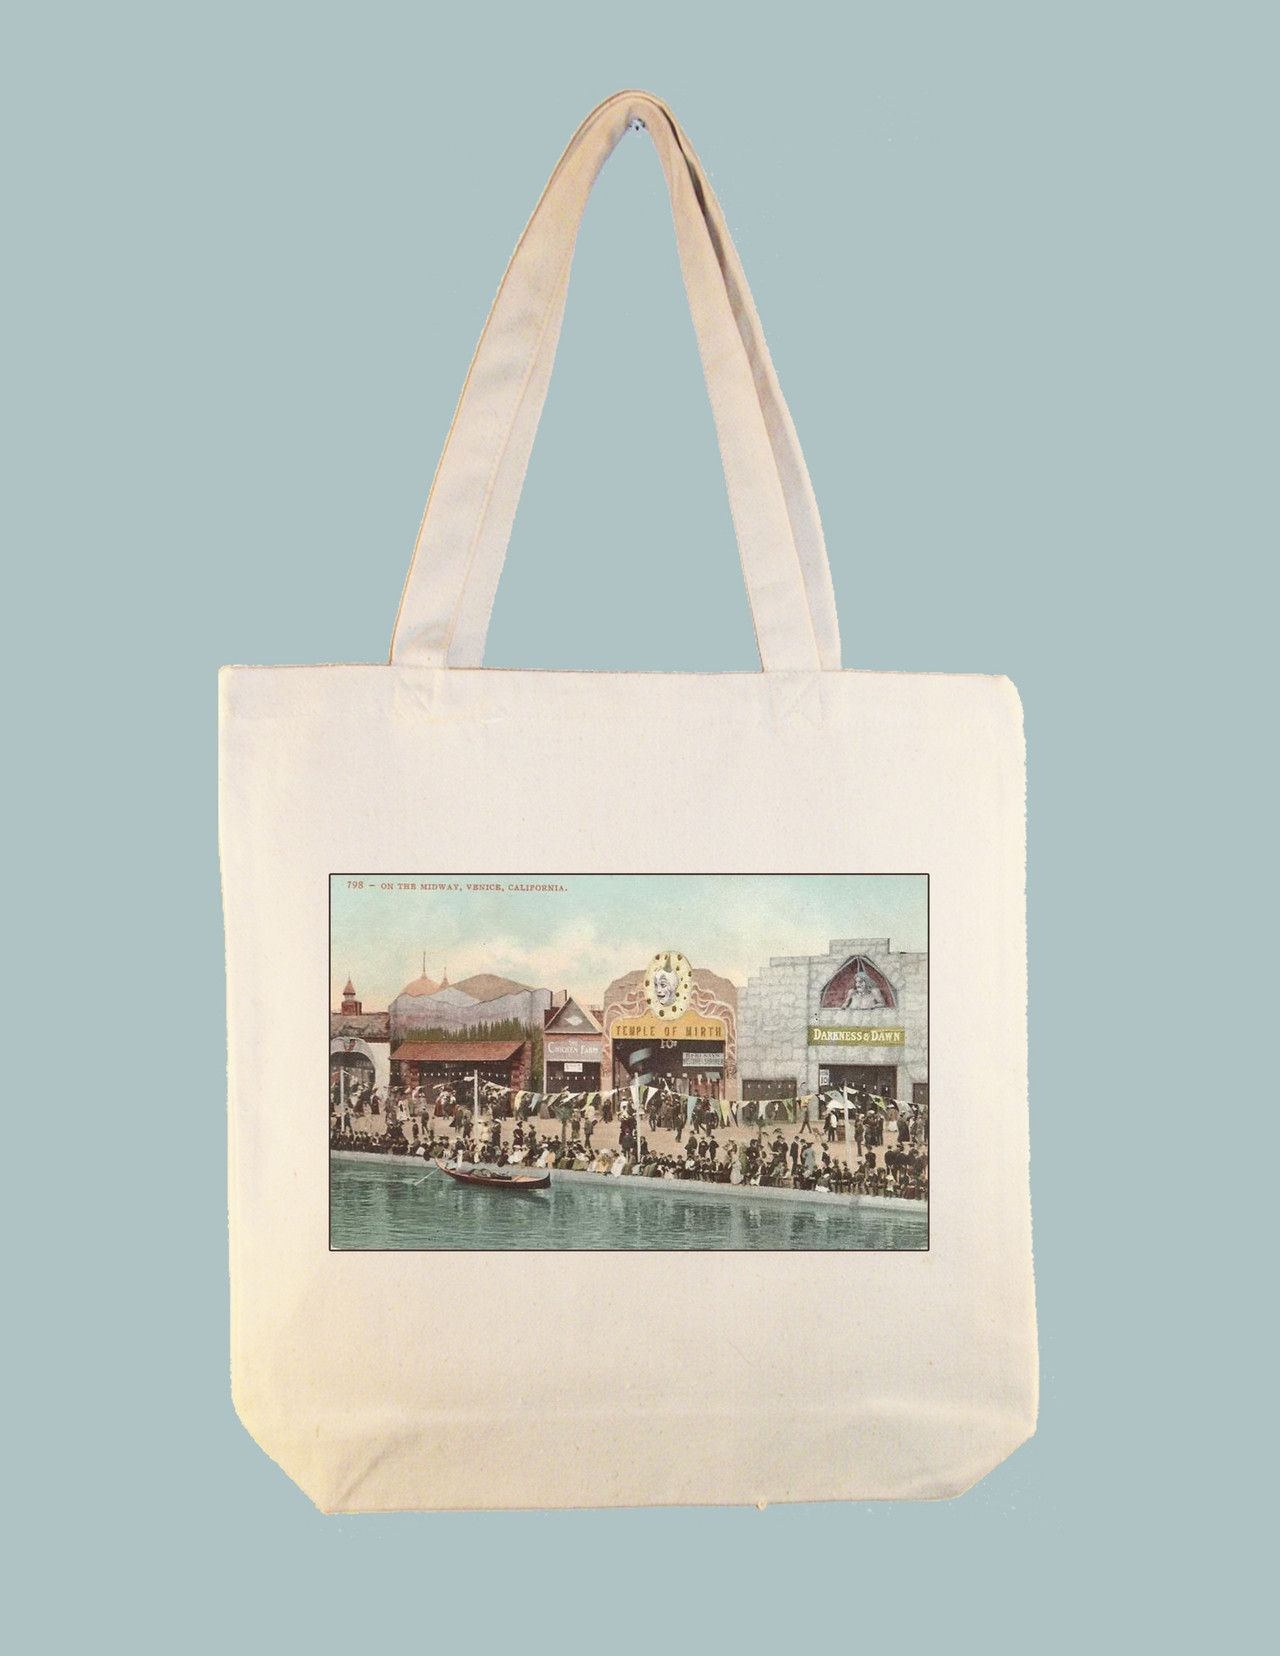 Venice, California Vintage Boardwalk Midway Postcard 15x15 Canvas Tote -- larger tote style available